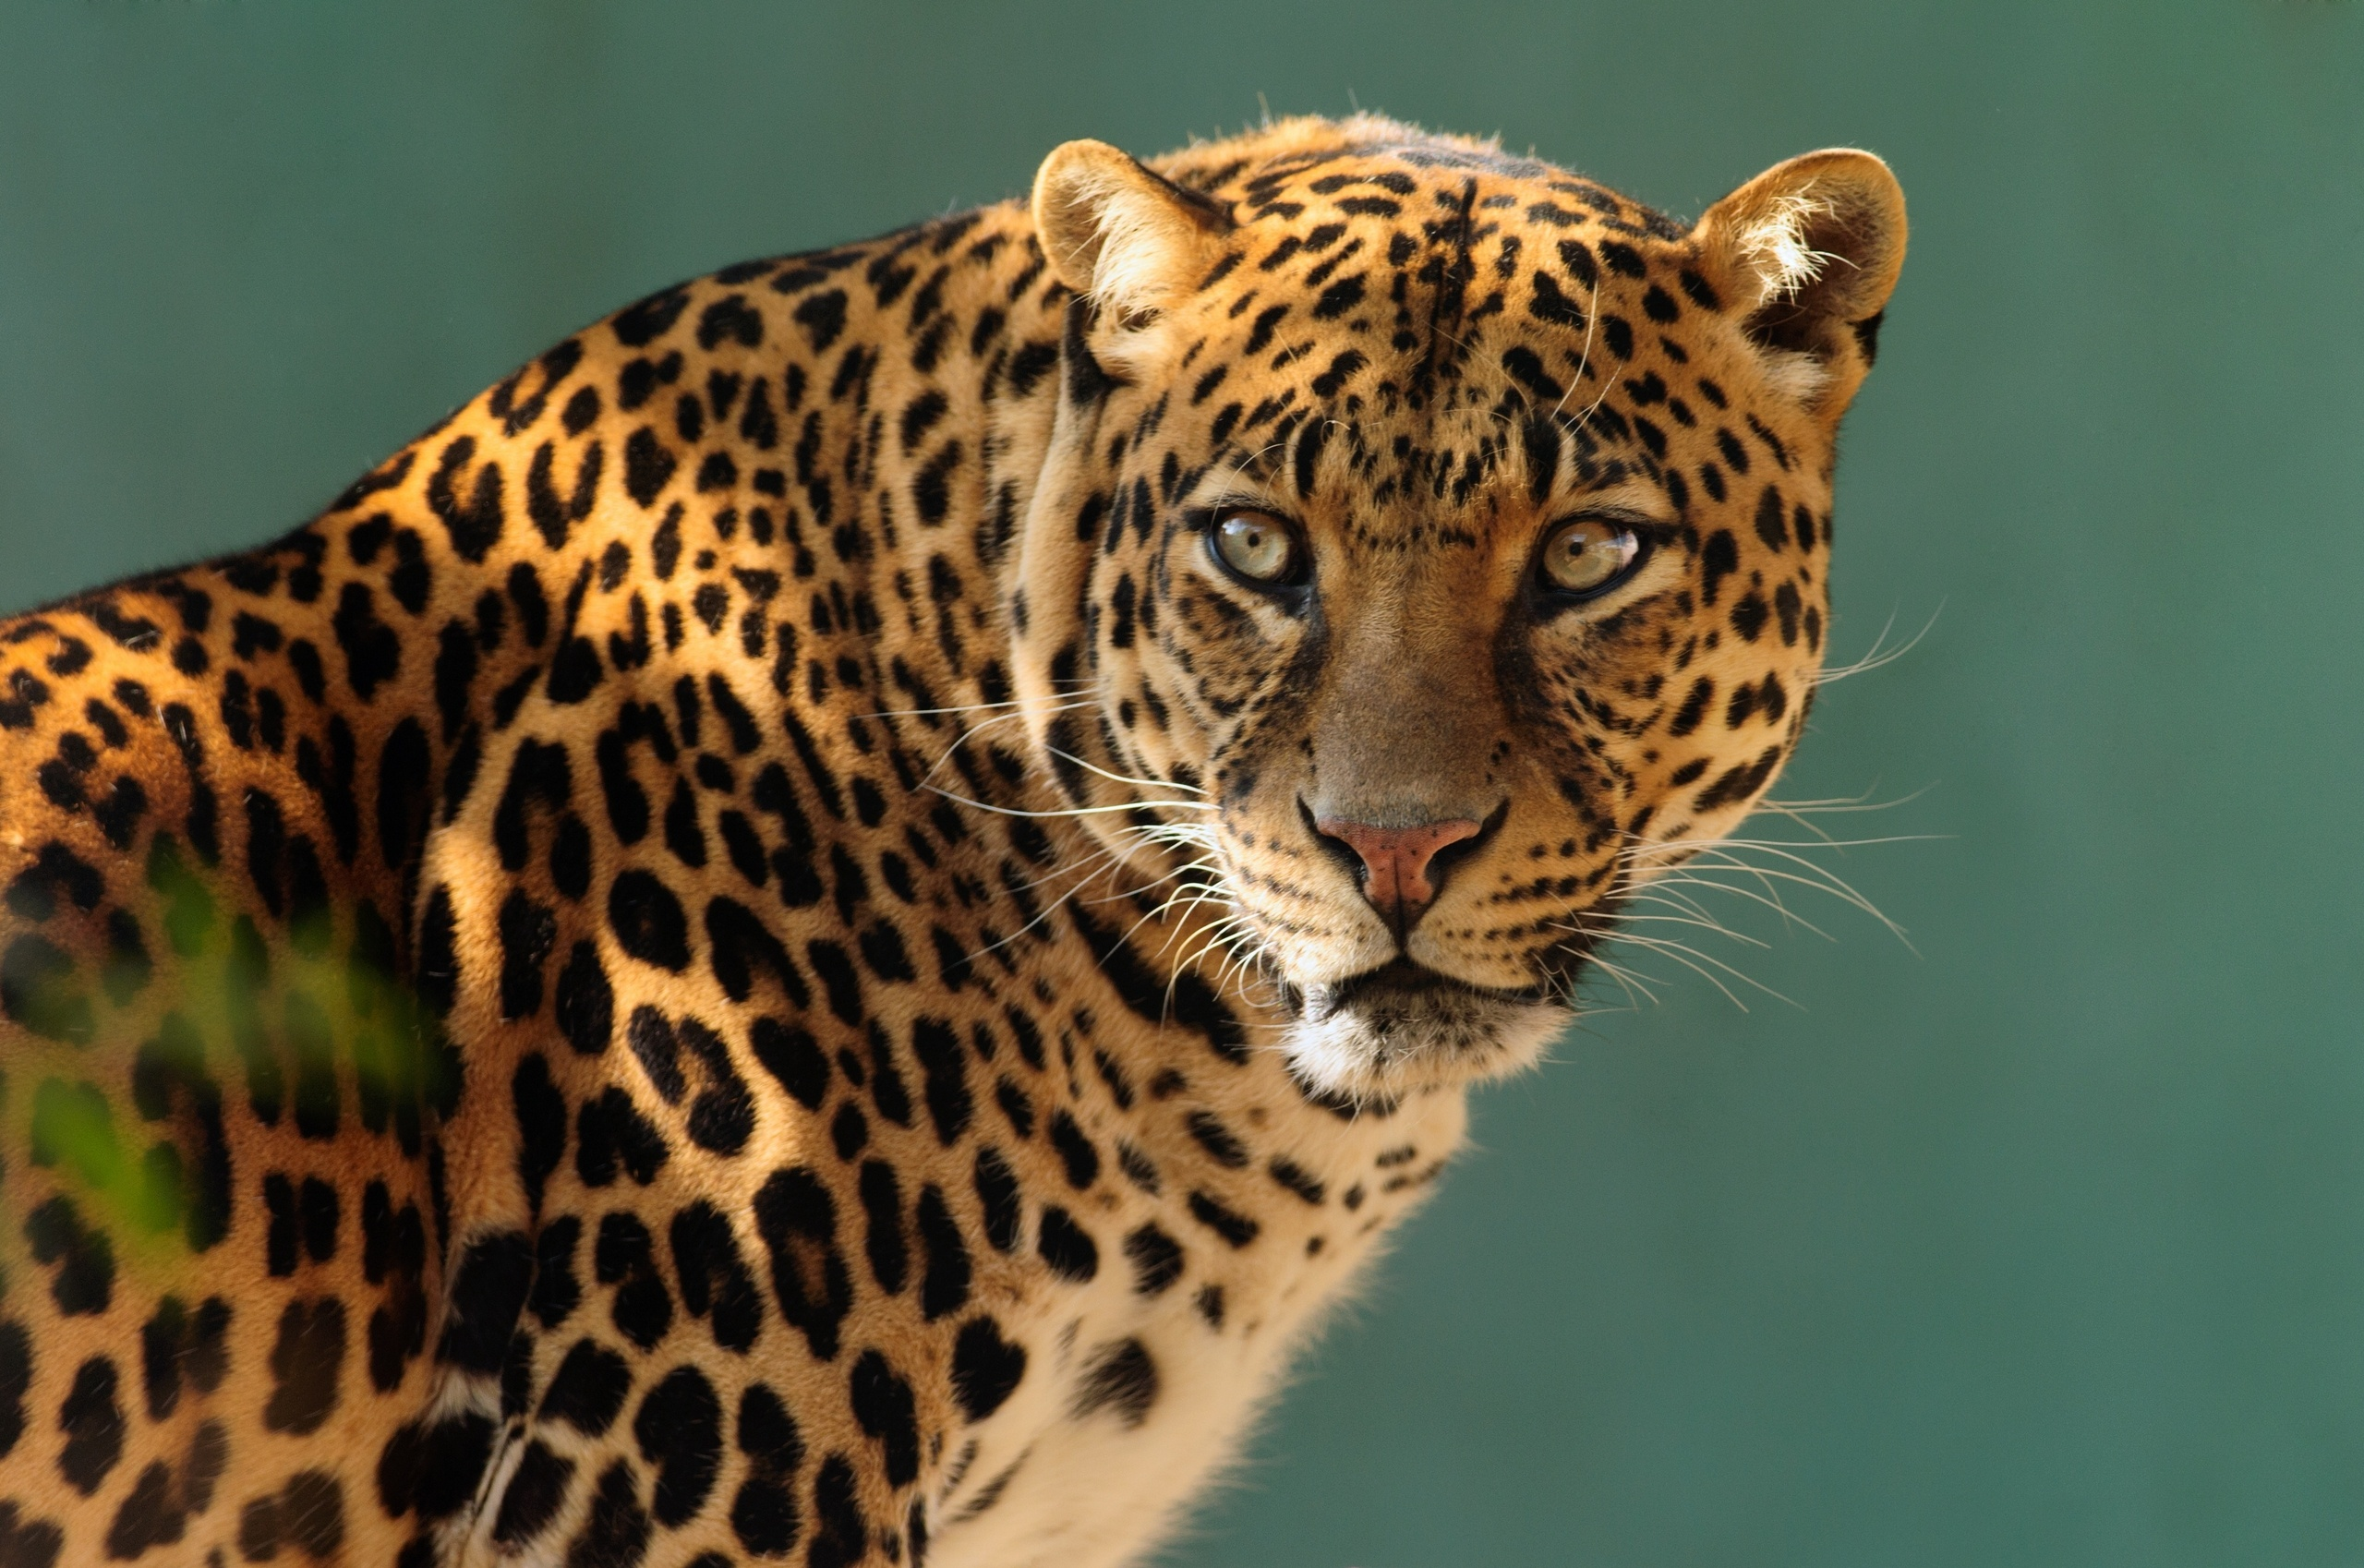 wild cats wallpaper collection - photo #7